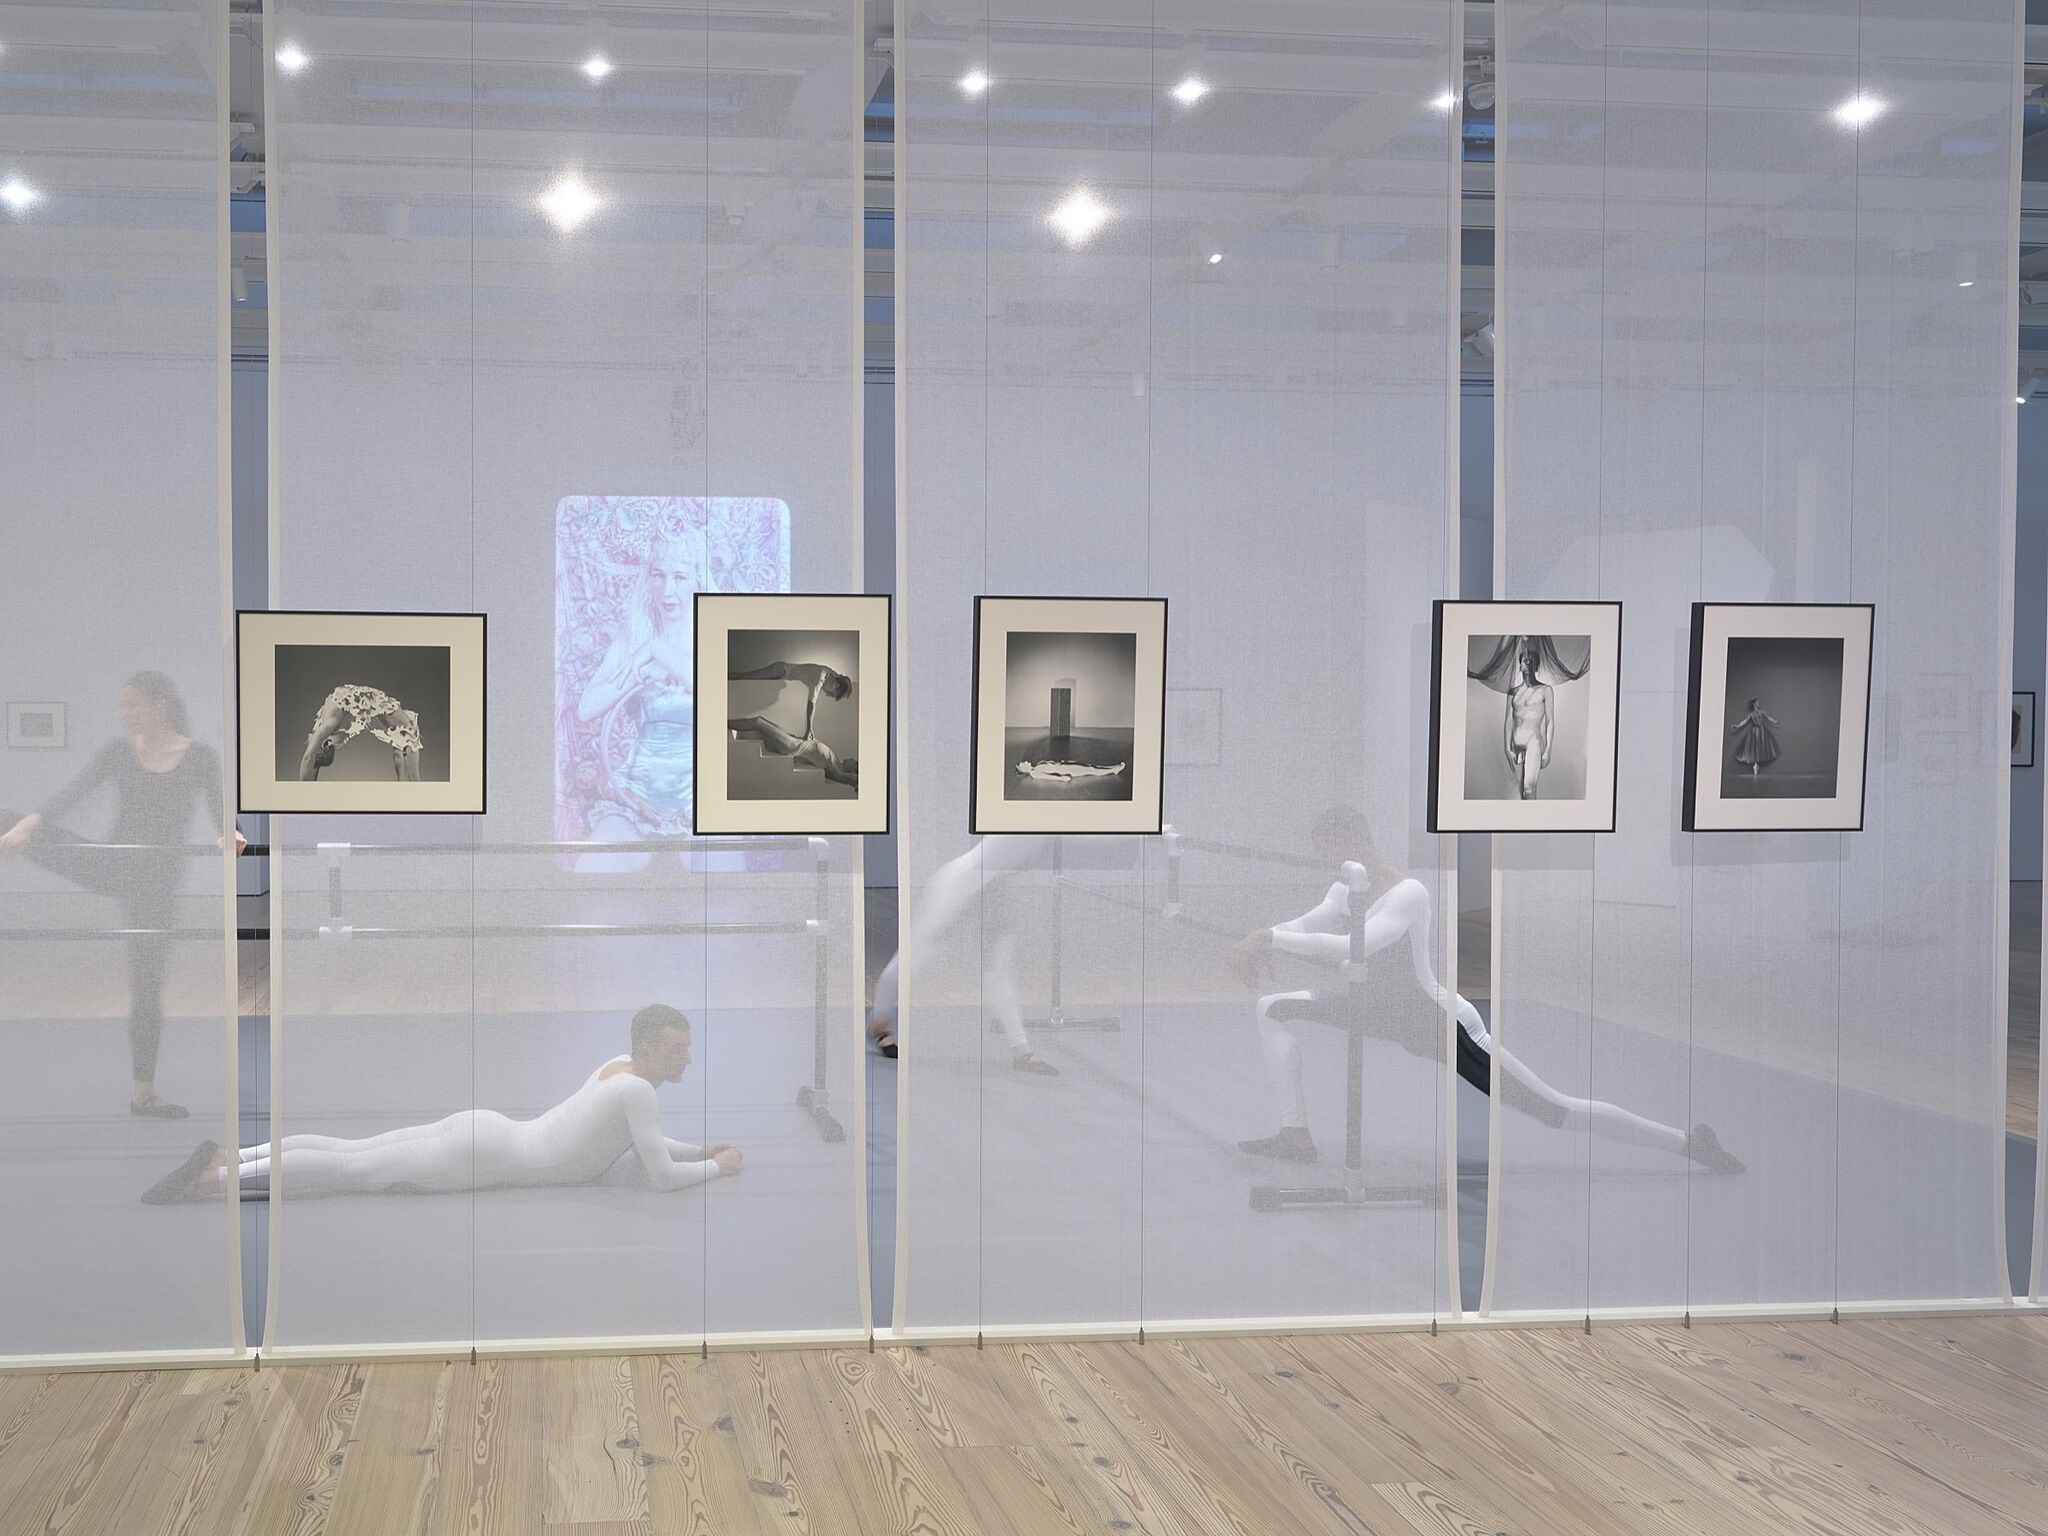 A group of dancers stretching in a gallery with photos on the walls.